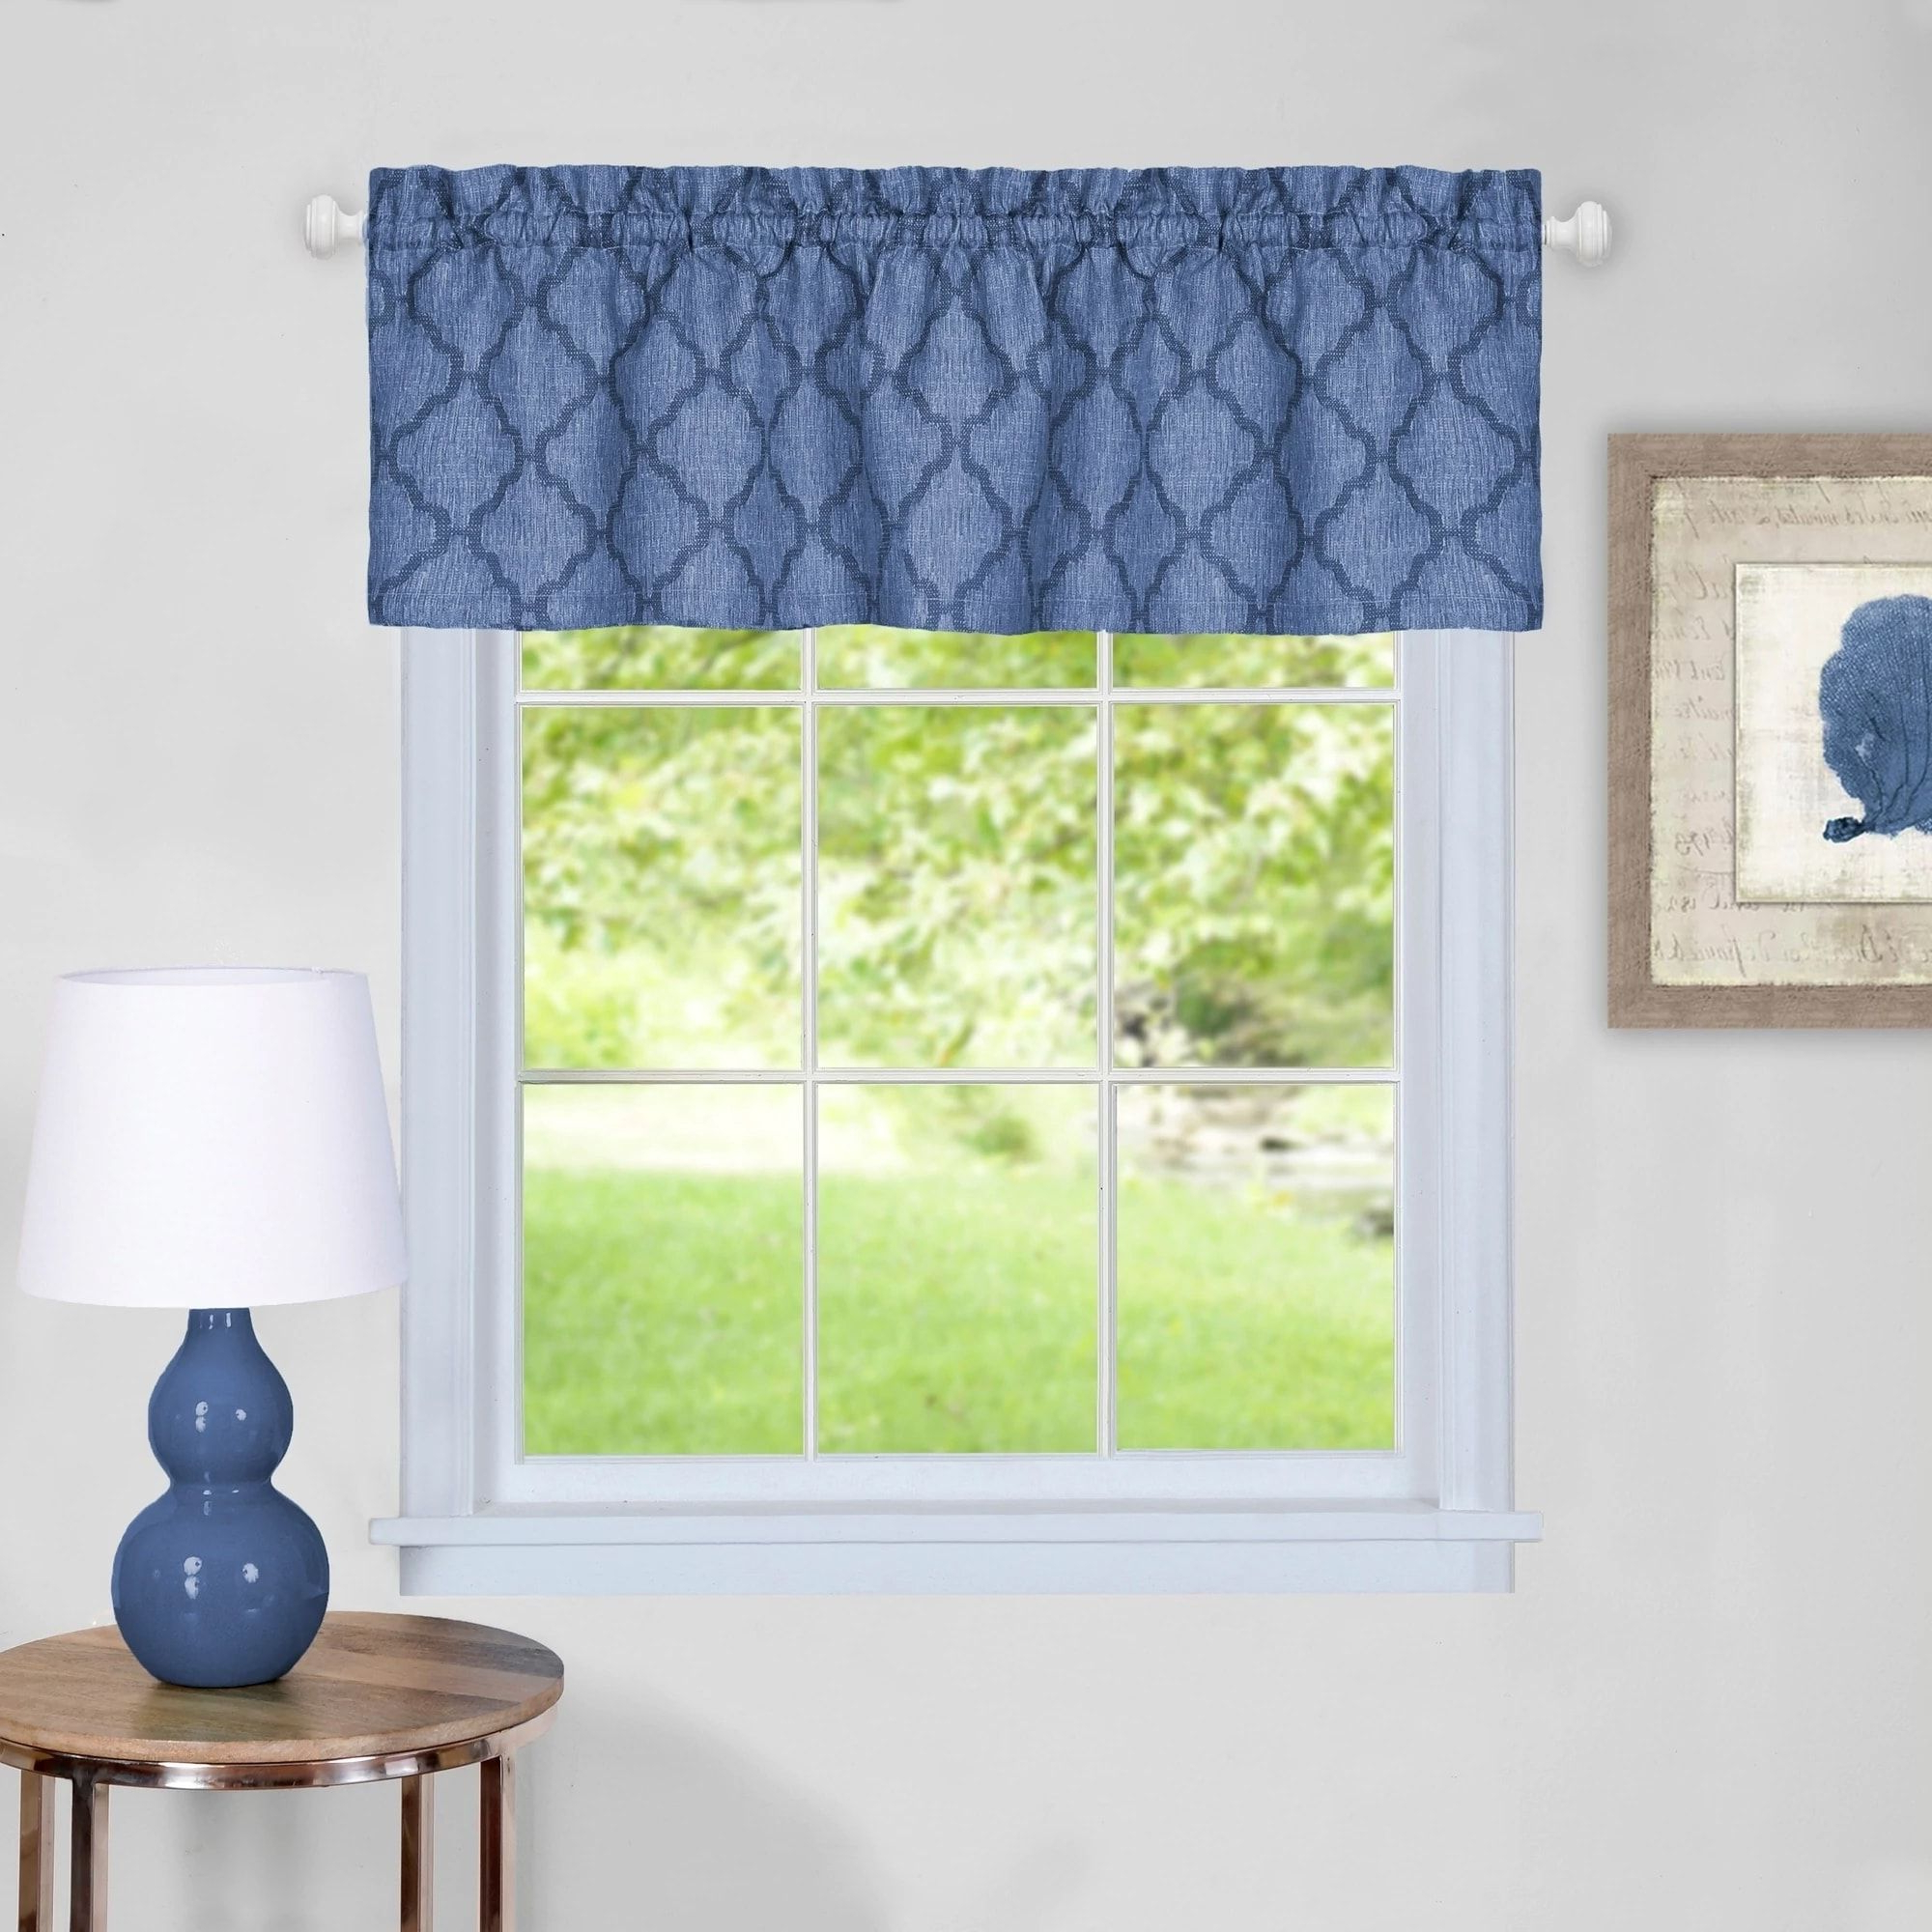 Preferred Trellis Pattern Window Valance (blue), Sweet Home Collection Within Trellis Pattern Window Valances (View 11 of 20)